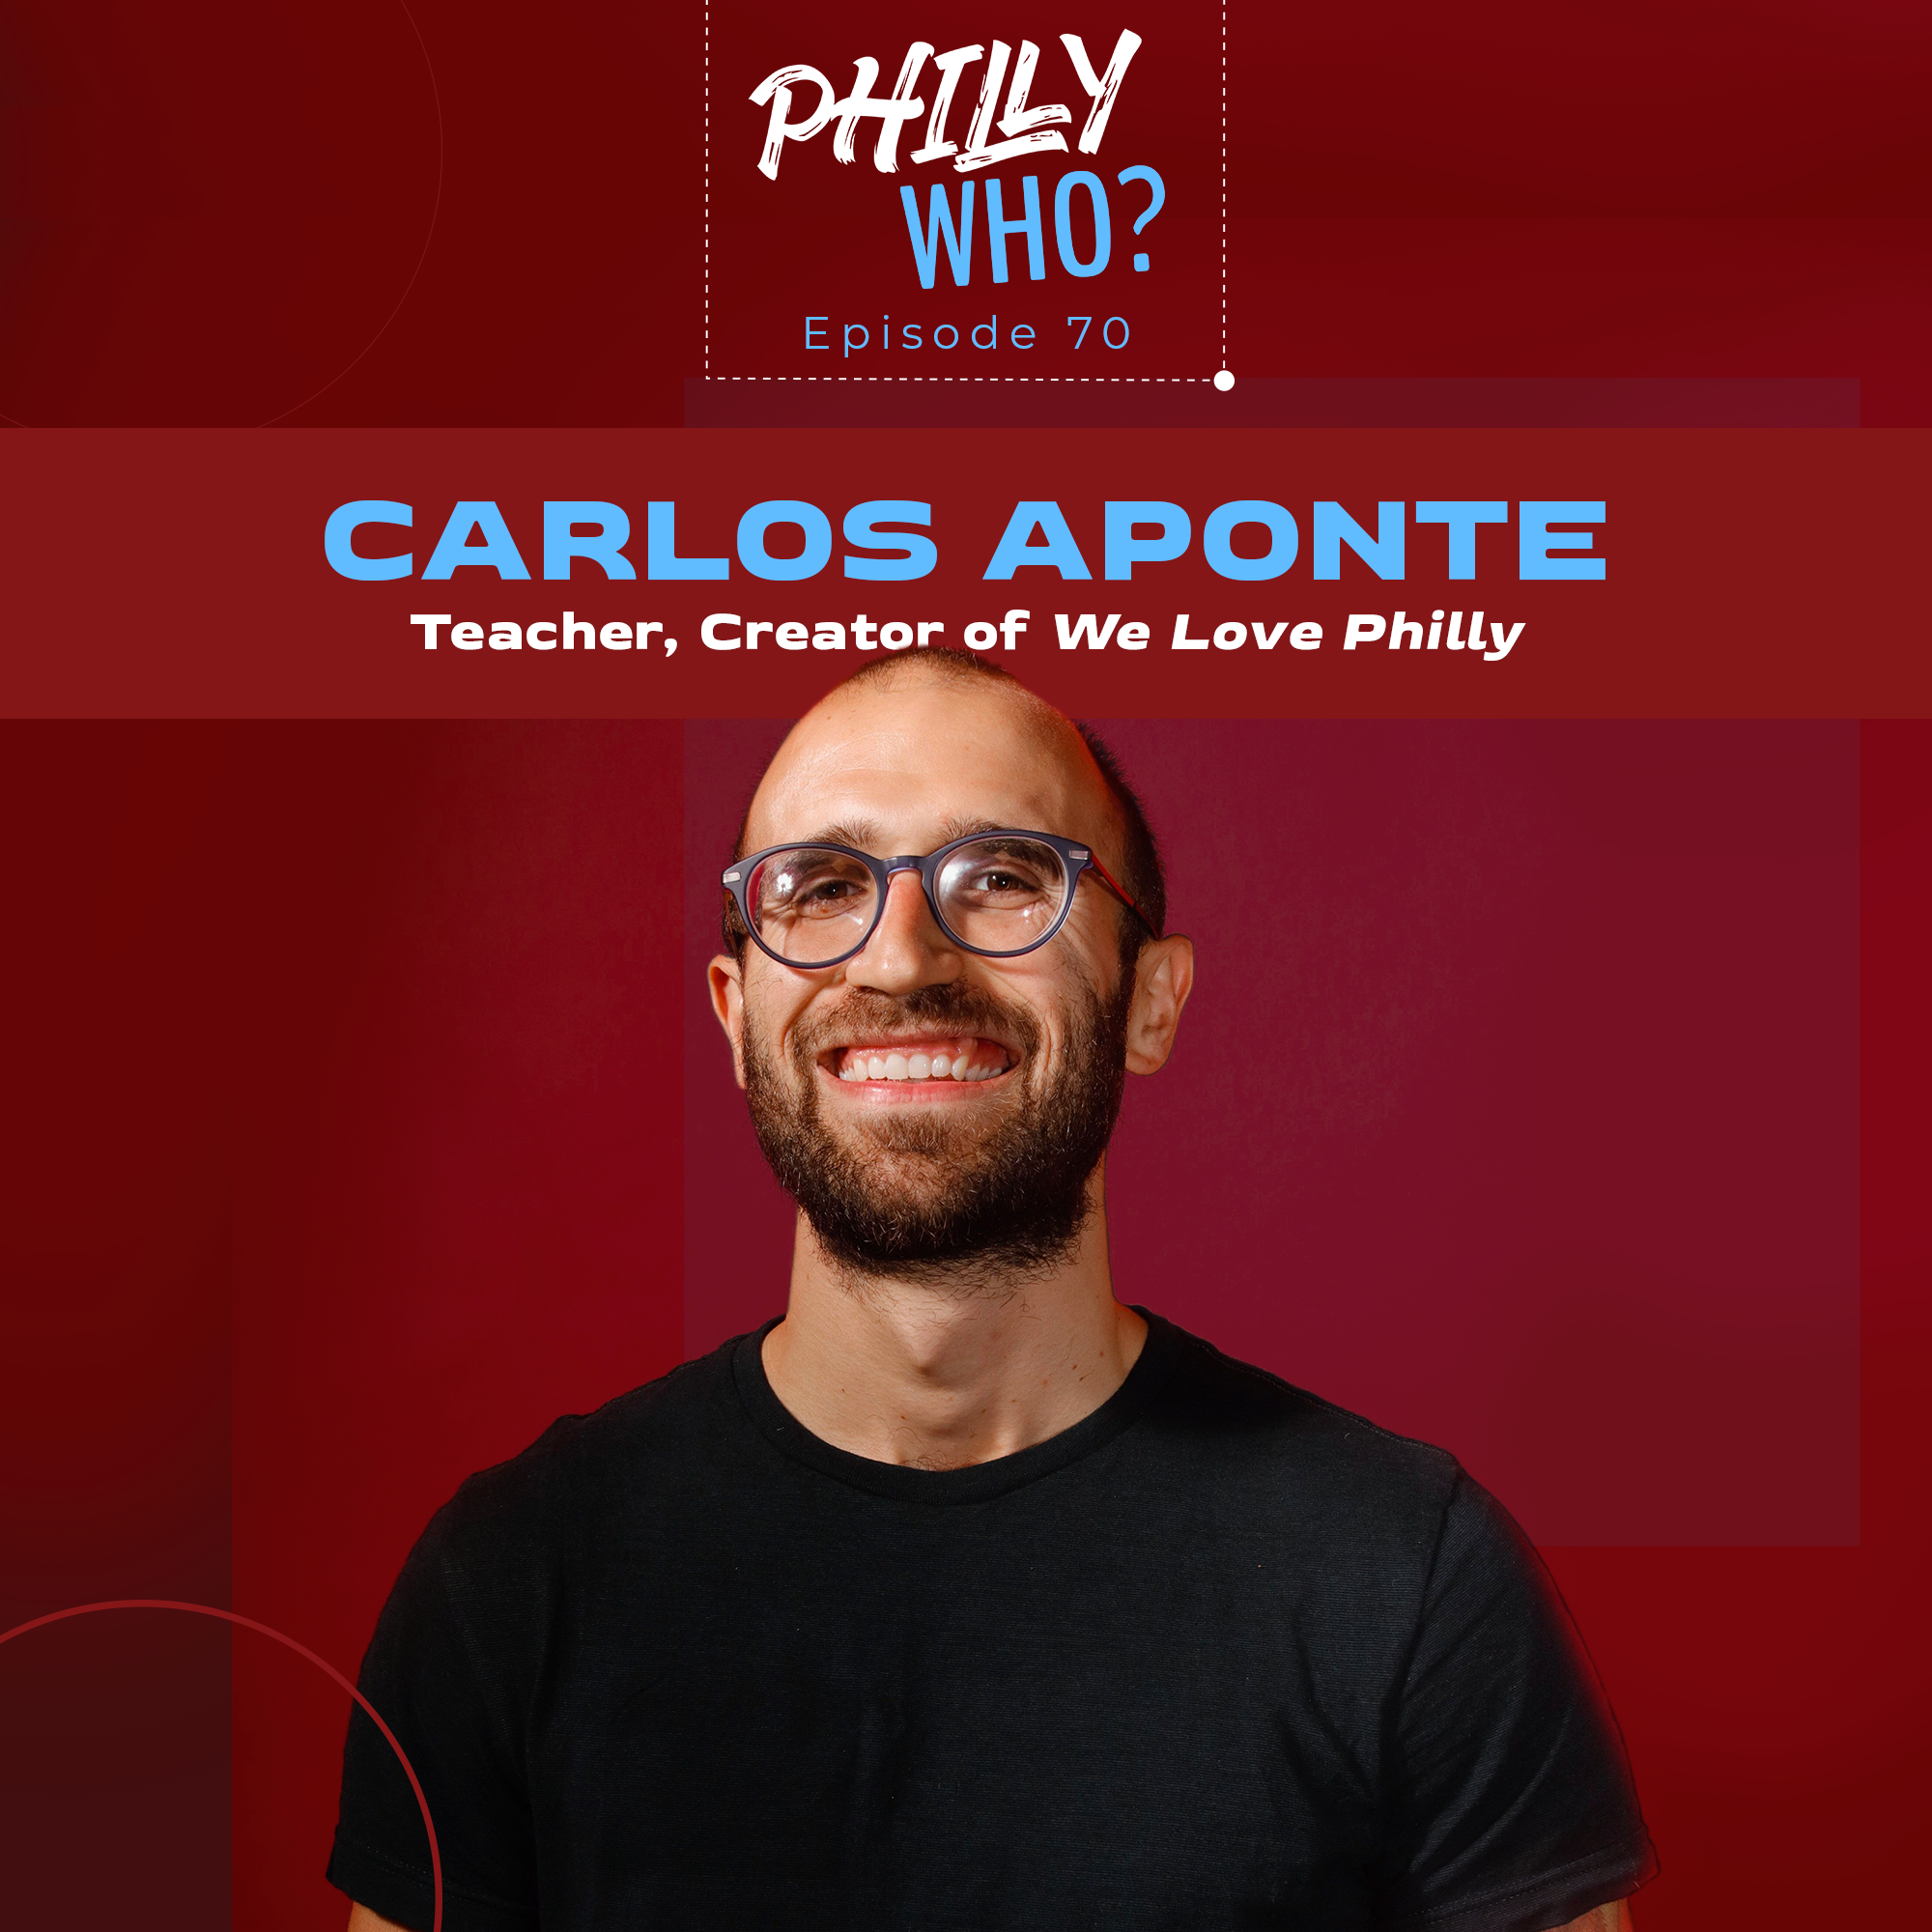 Carlos Aponte: The History Teacher Reinventing Philly Schooling